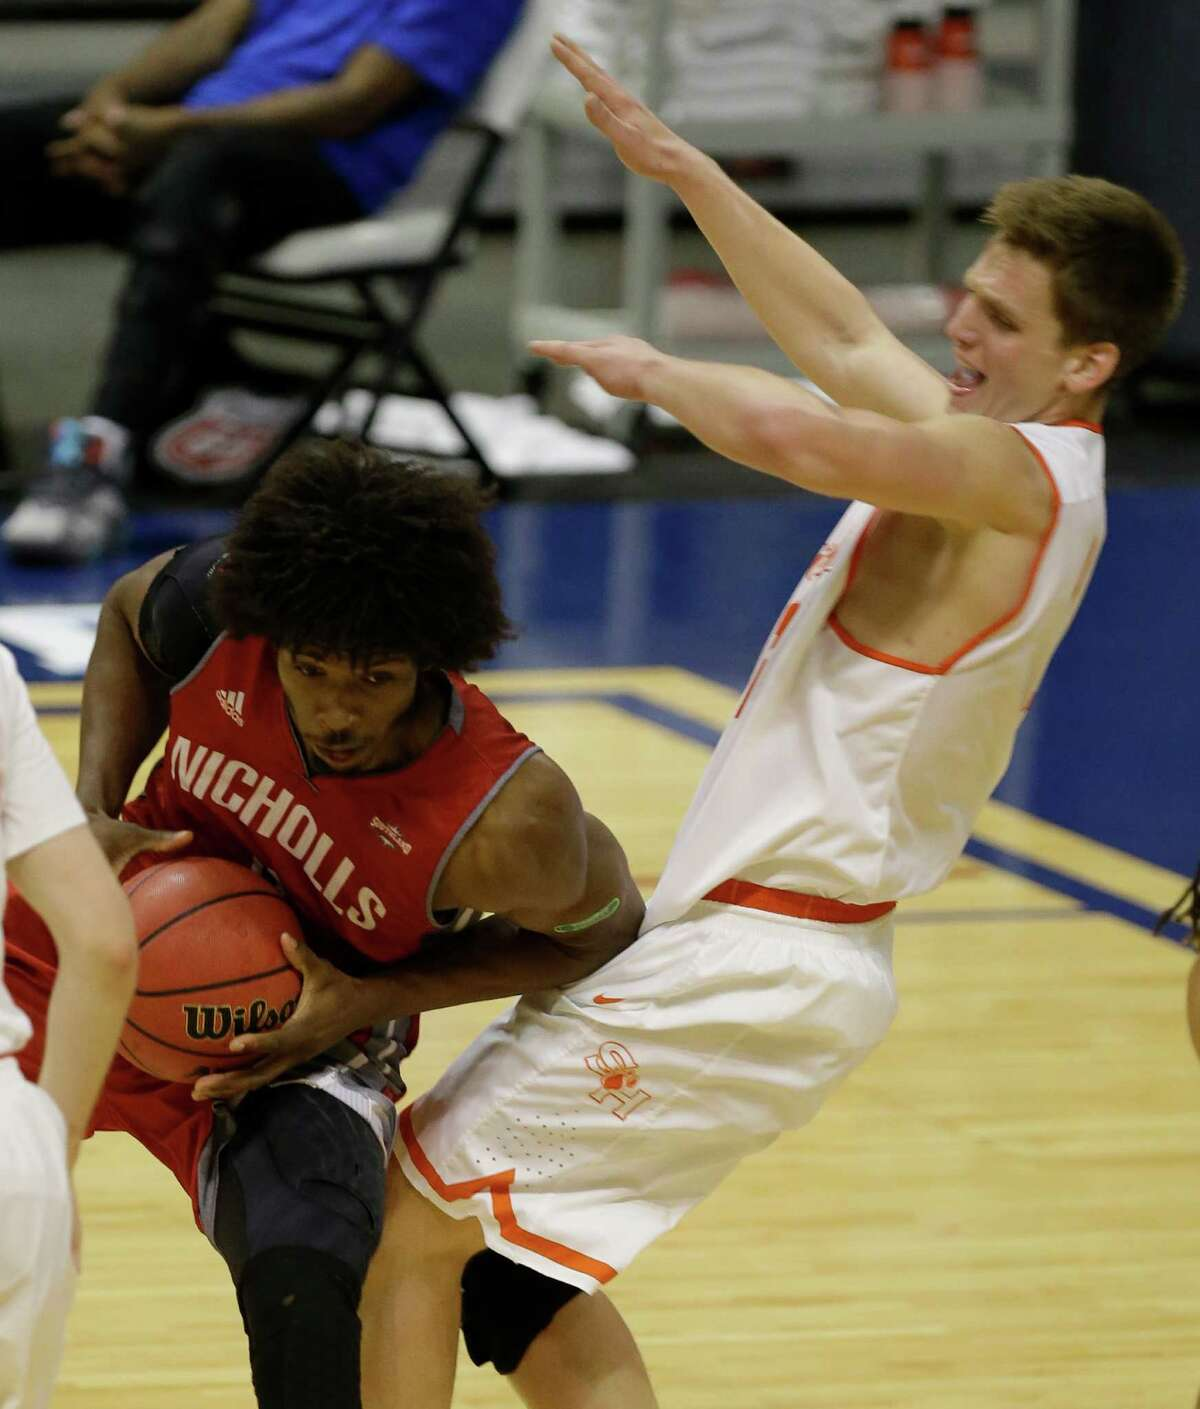 Sam Houston Aurimuas Majauskas works to stop Nicholls Adam Ward during the first half of game at the Southland conference tournament Thursday, March 10, 2016, in Katy.